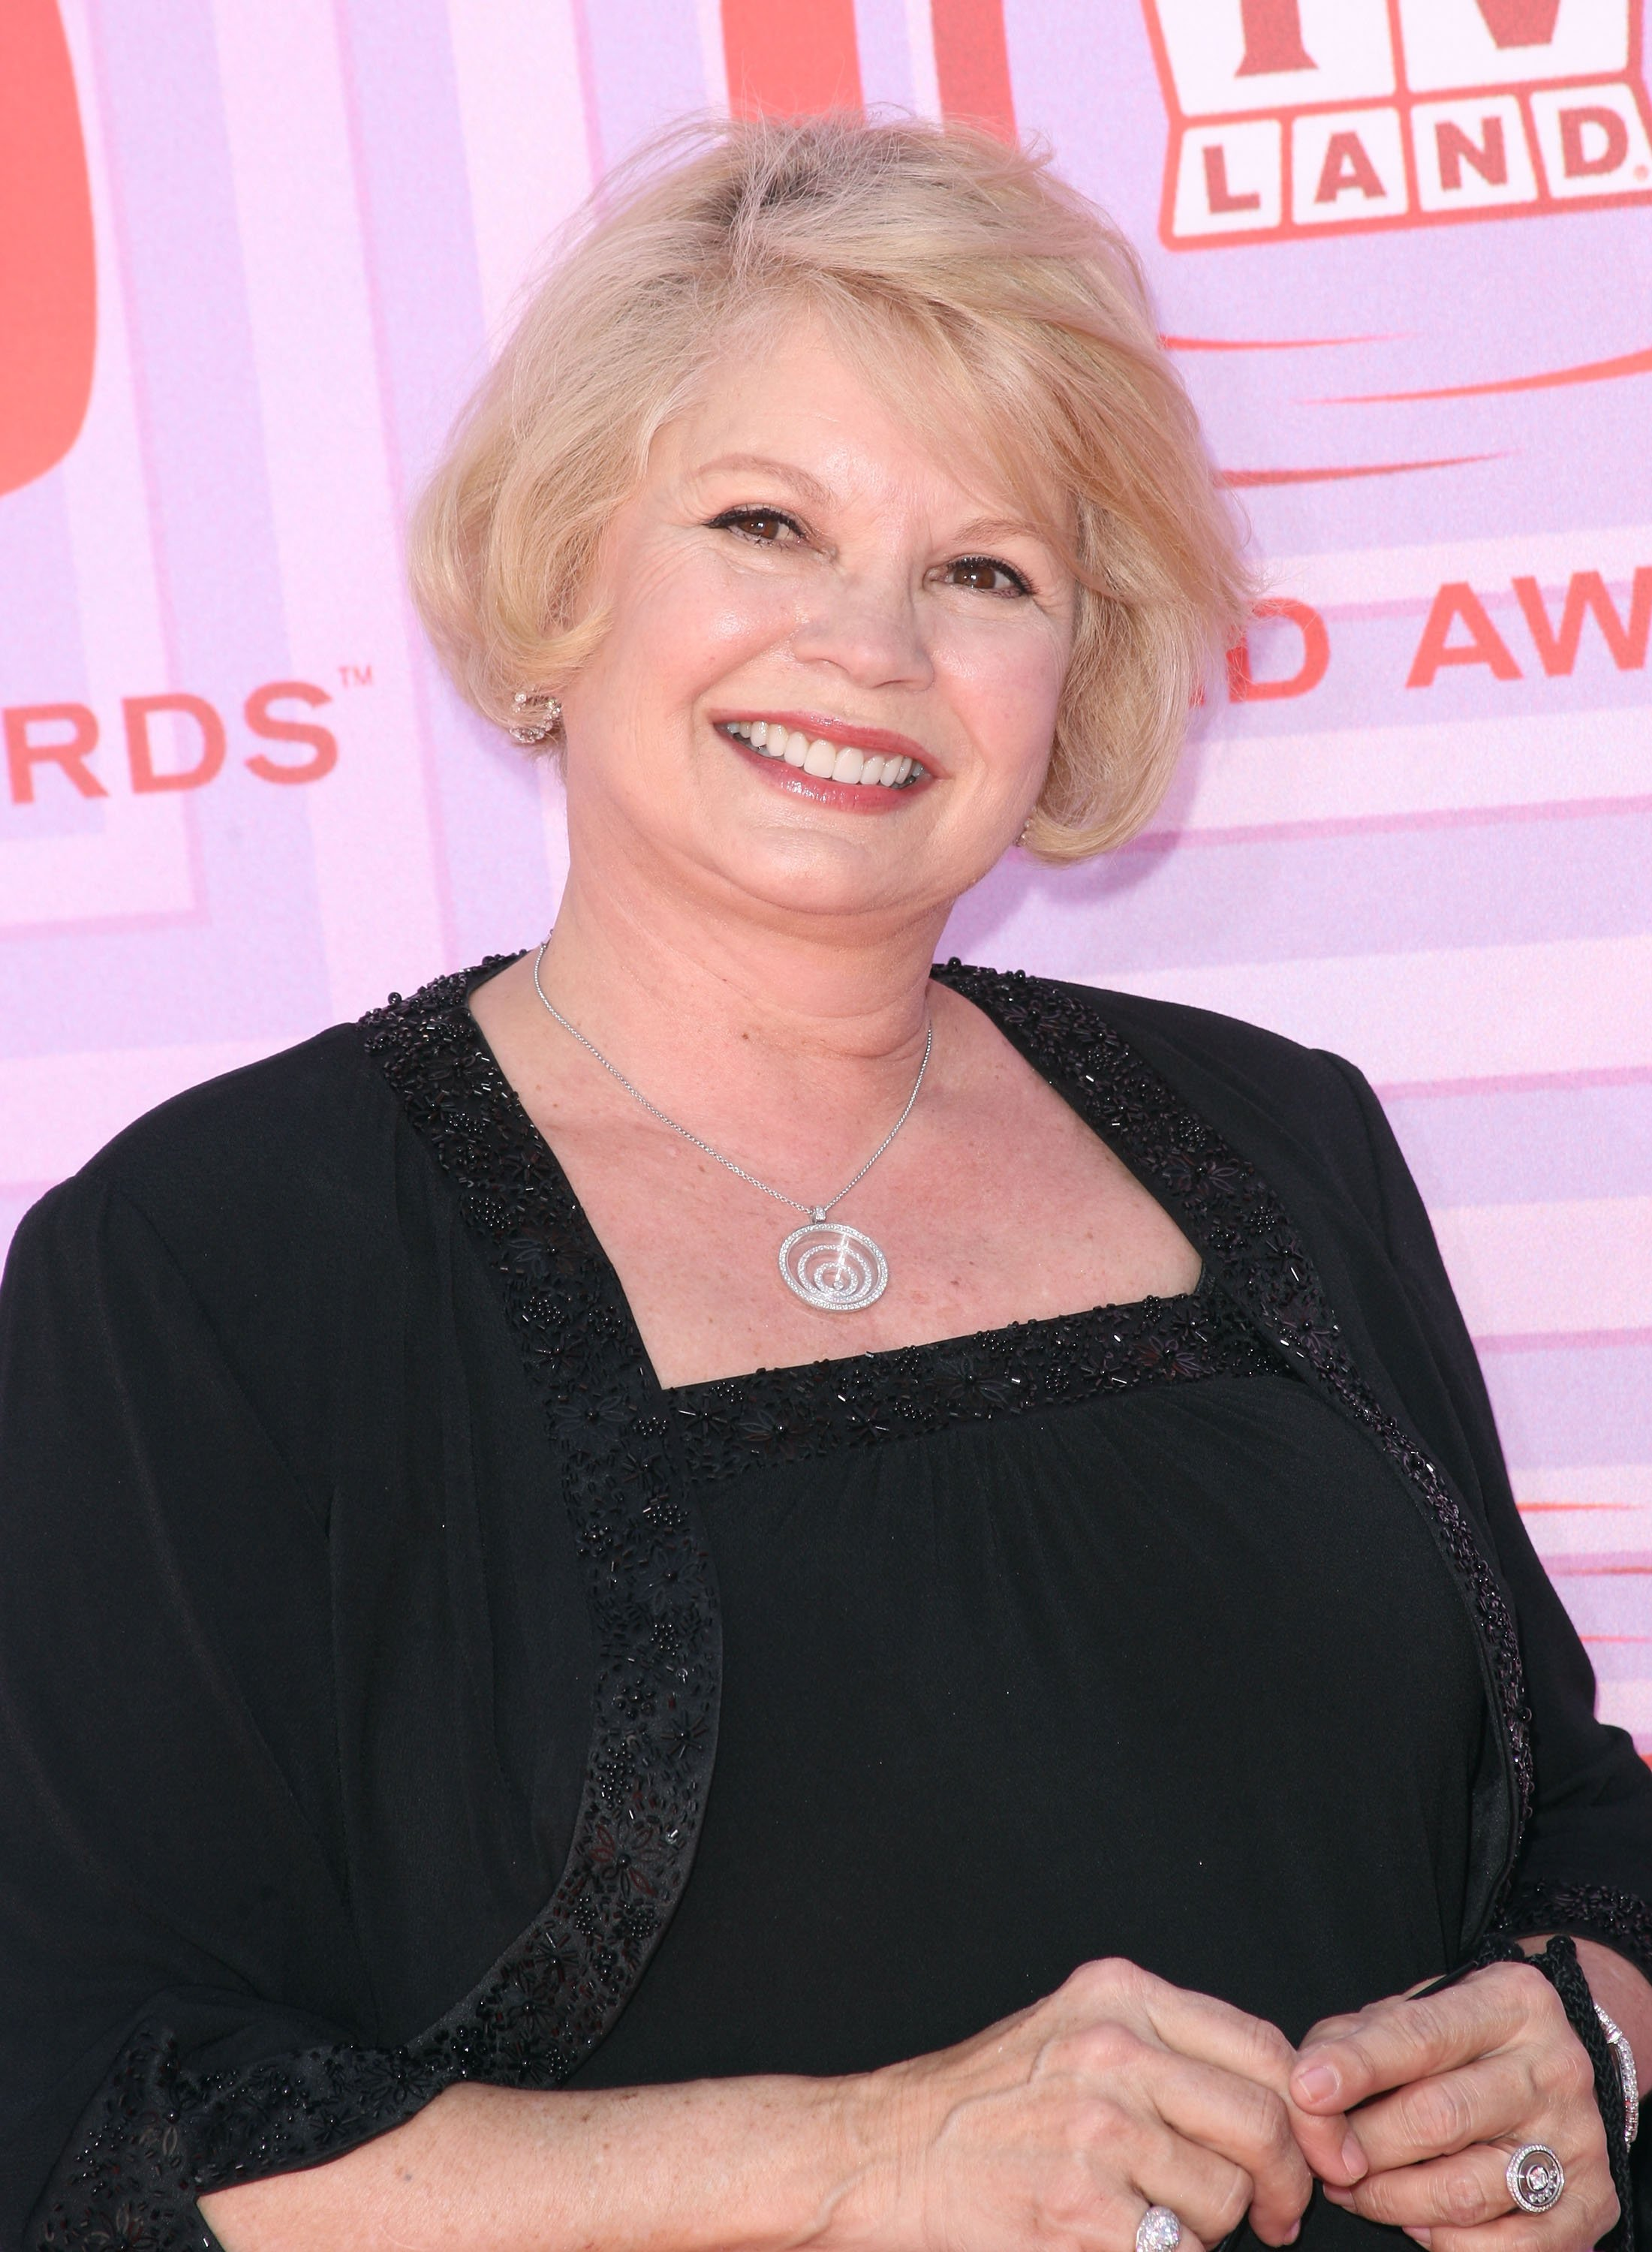 Kathy Garver on April 19, 2009 in Universal City, California | Source: Getty Images